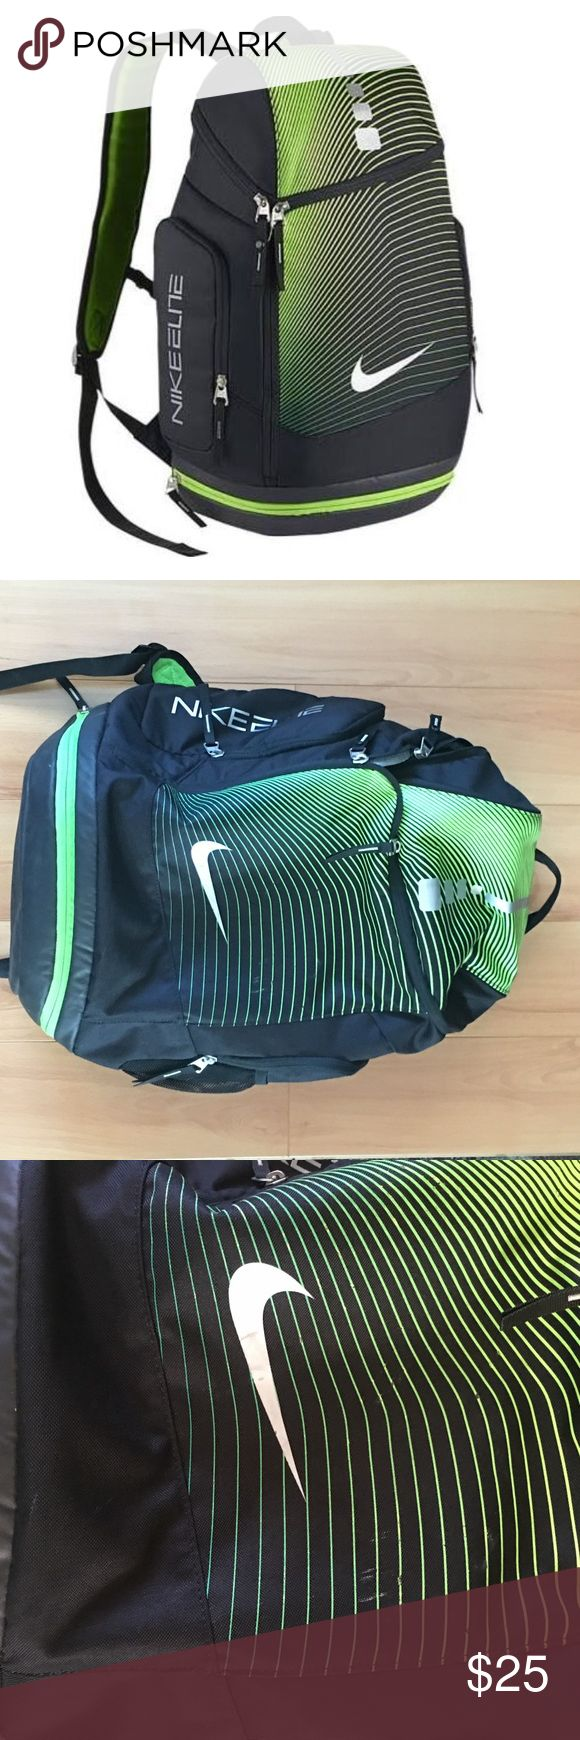 Nike Elite Backpack Nike Elite Backpack. Used condition. Minors wear. Small section of the zipper came off track but it doesn't effect the use. Back buckle doesn't latch. Still has a lot of life. Nike Bags Backpacks